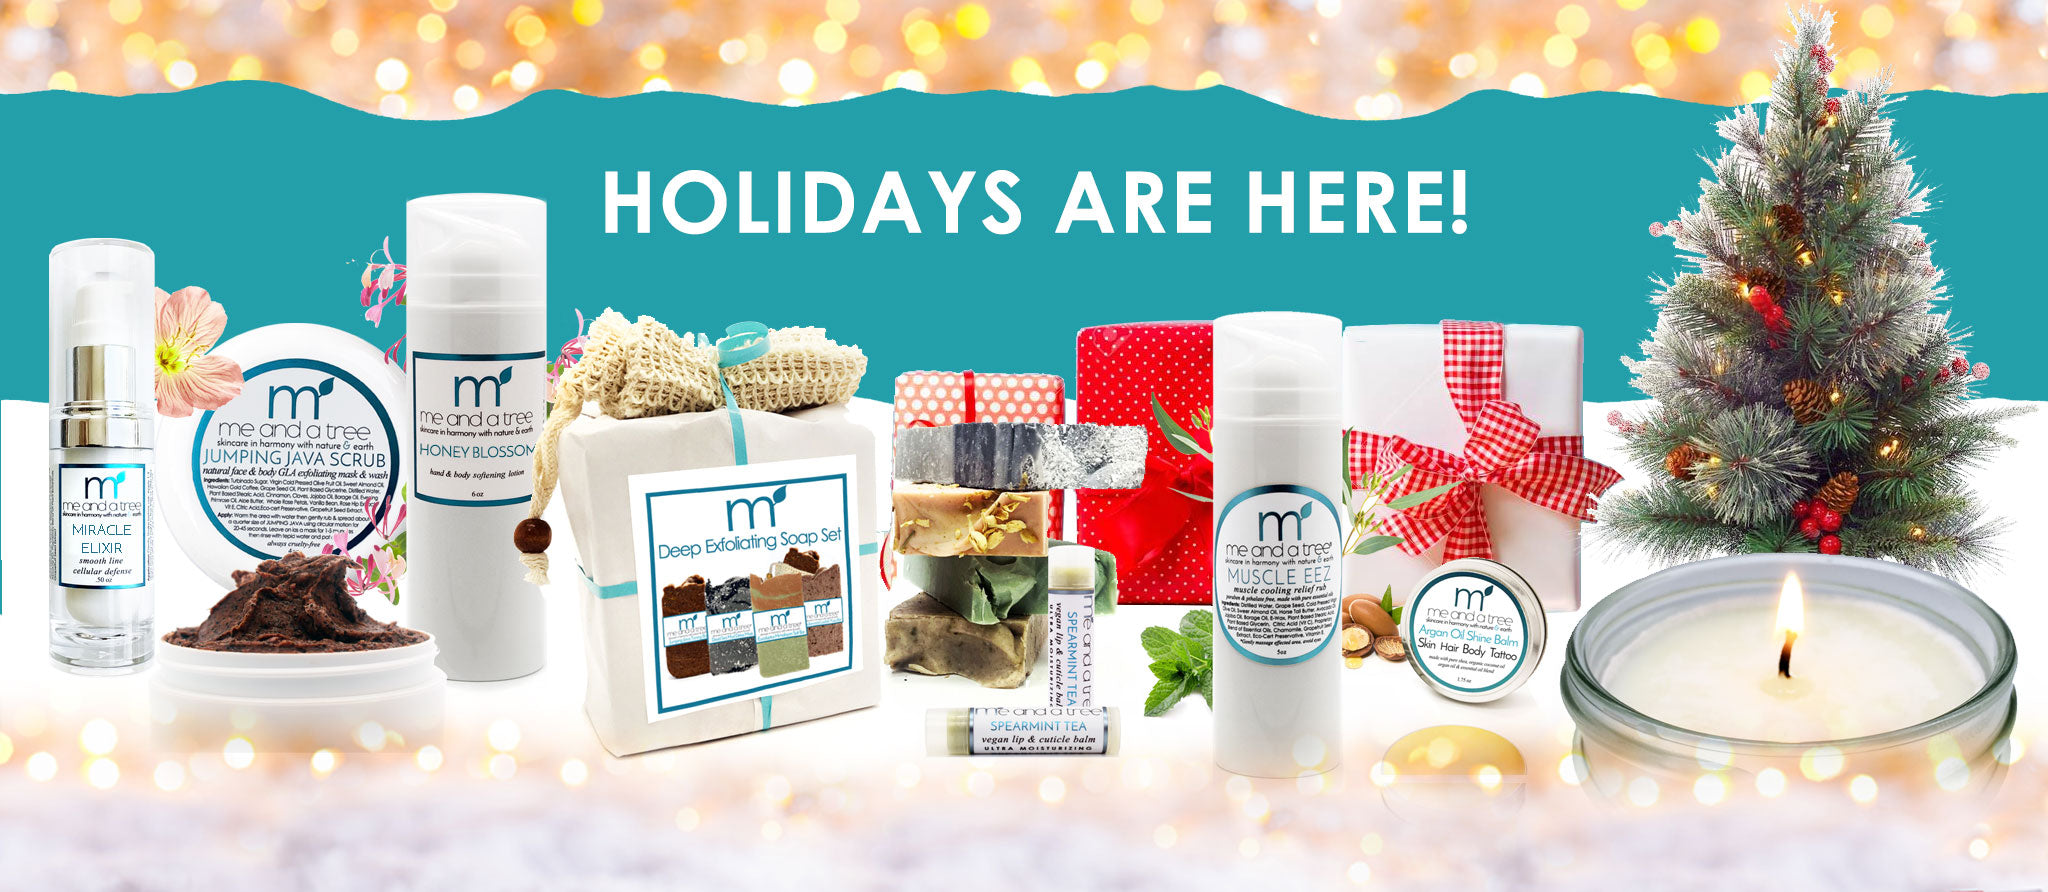 Best Natural Skin Care Holiday Shopping